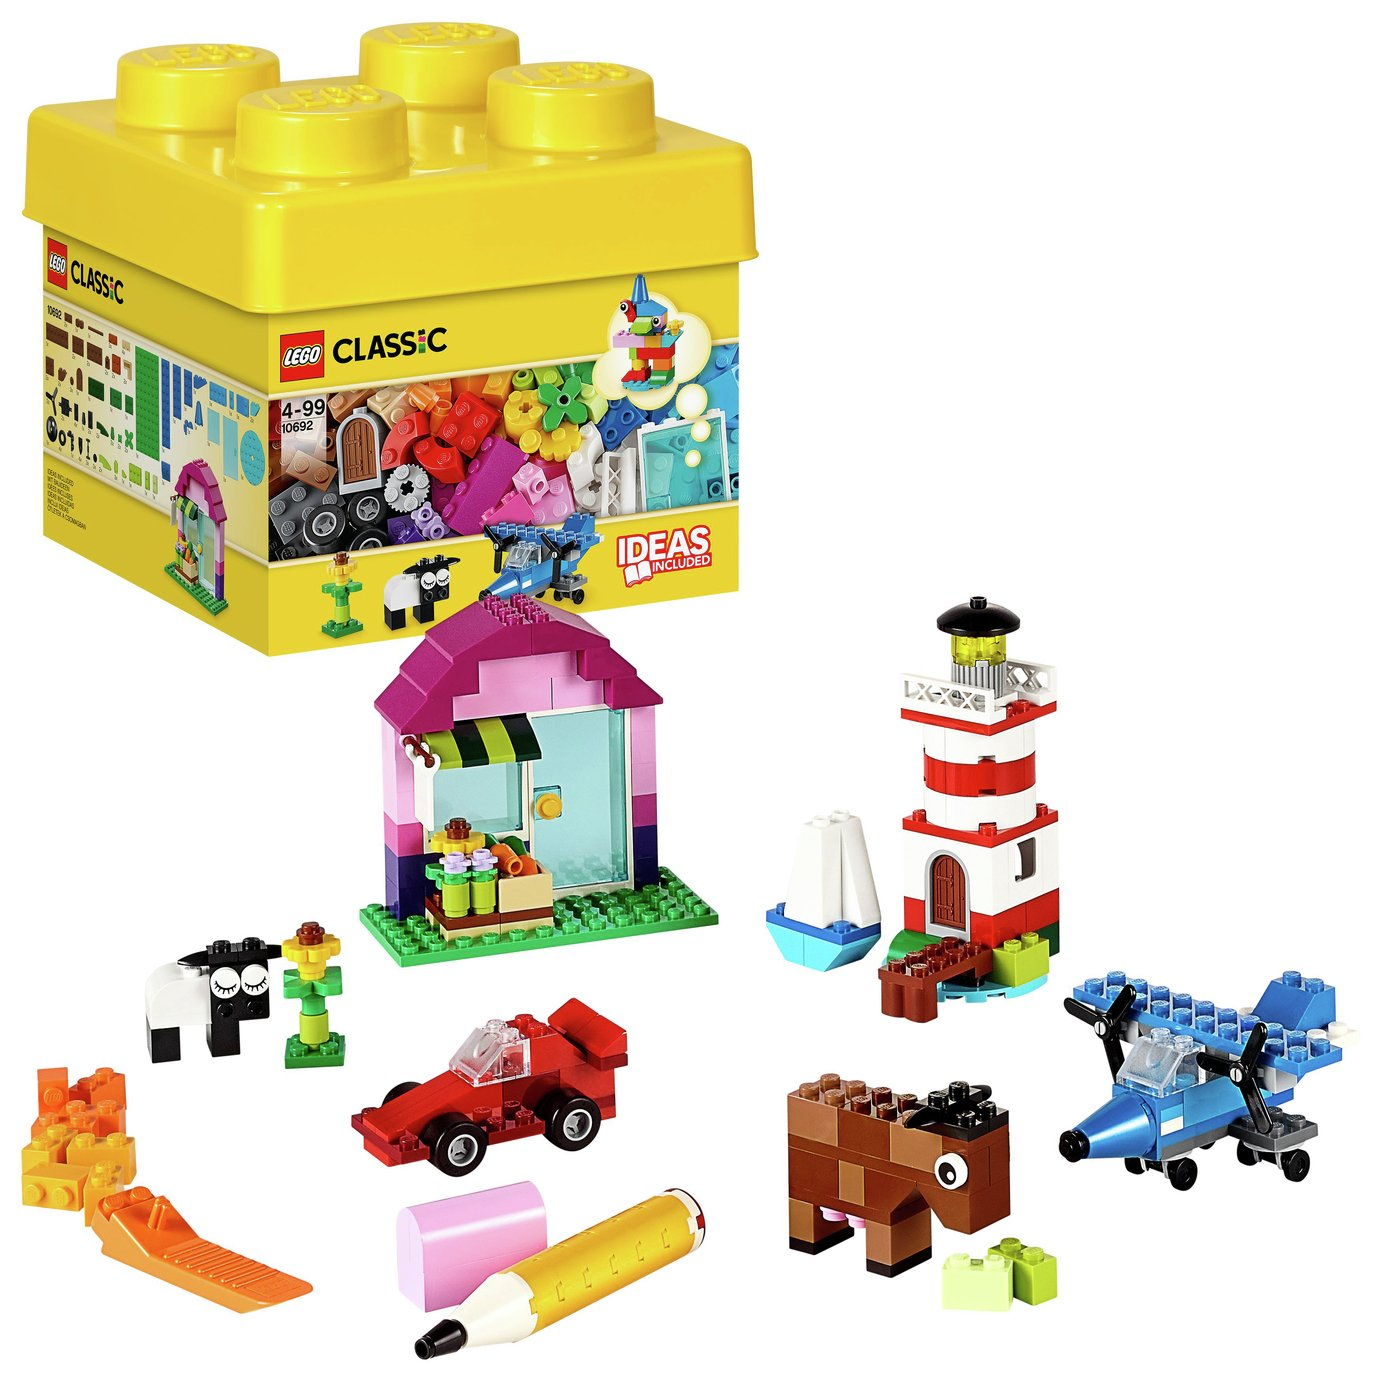 LEGO Classic Creative Bricks Set - 10692